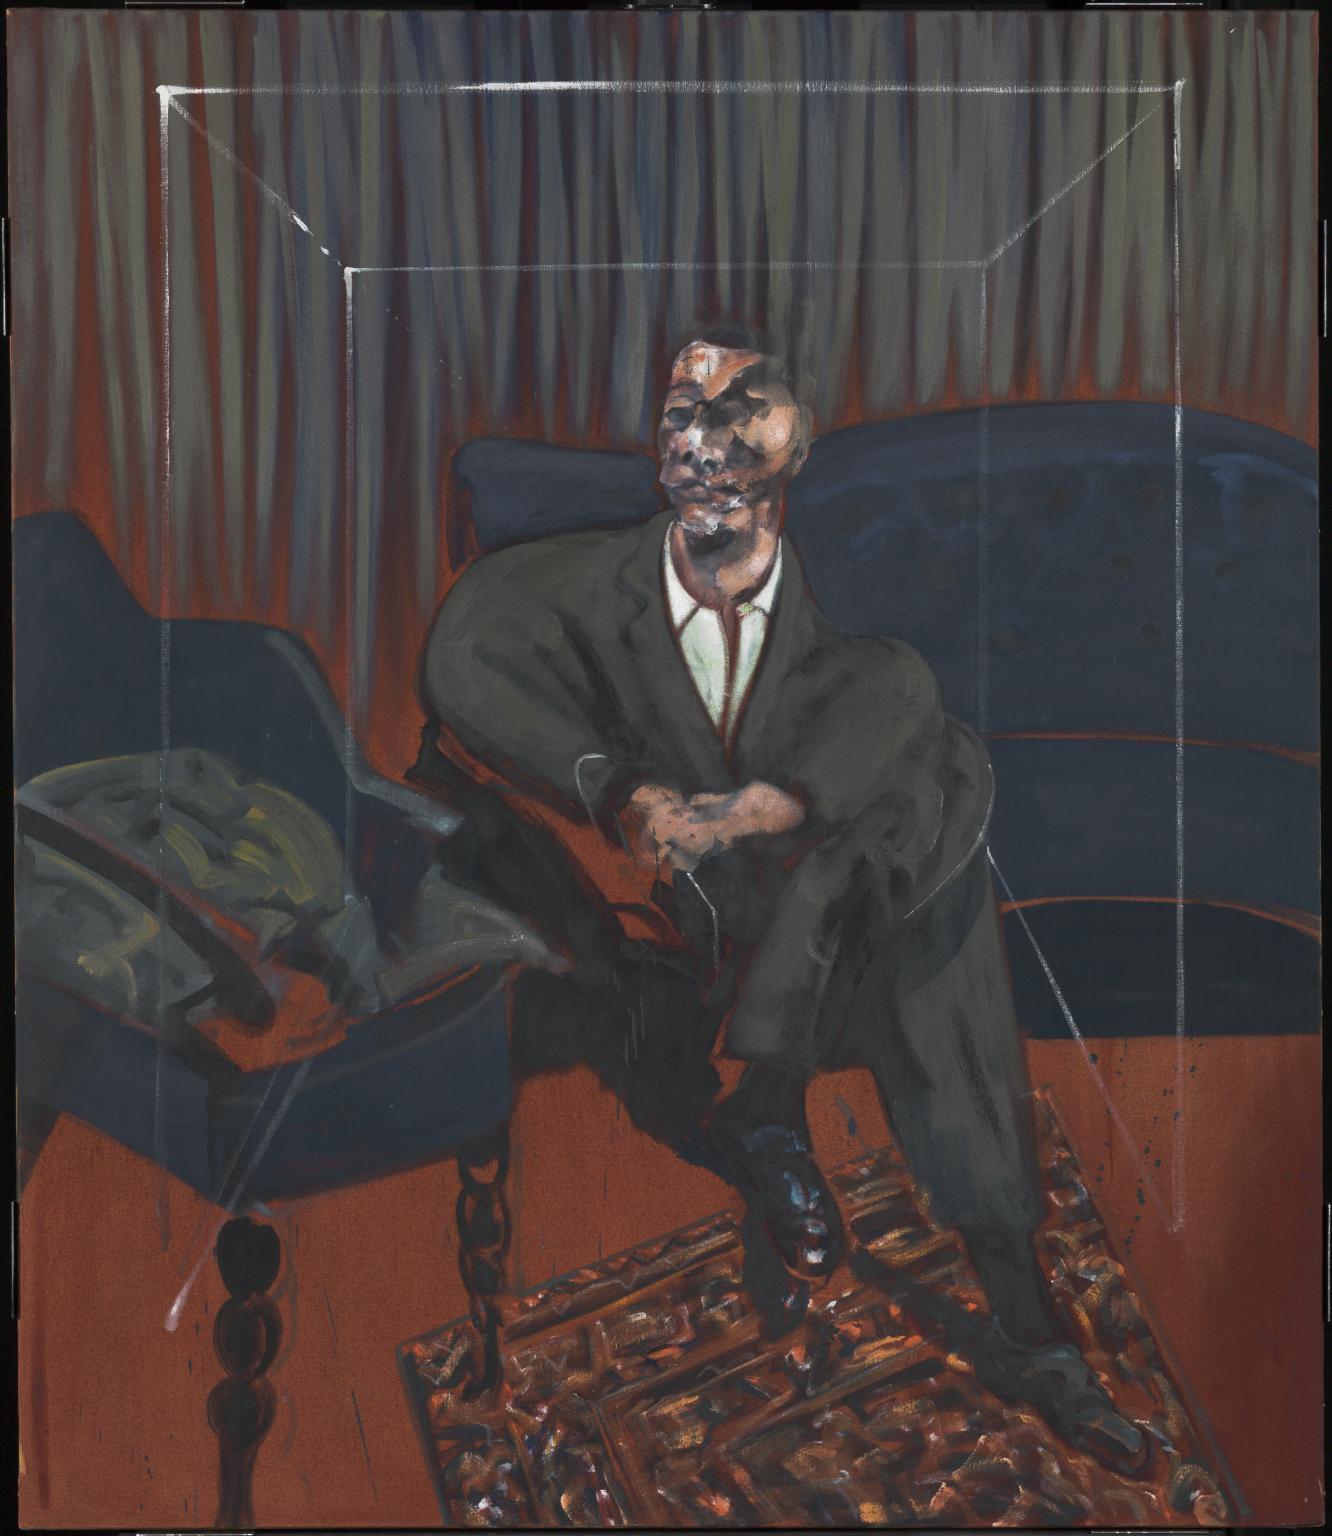 Applying Perspective Example: Francis Bacon, Seated Figure, oil on canvas, 1651 x 1422 mm, curtesy of Tate